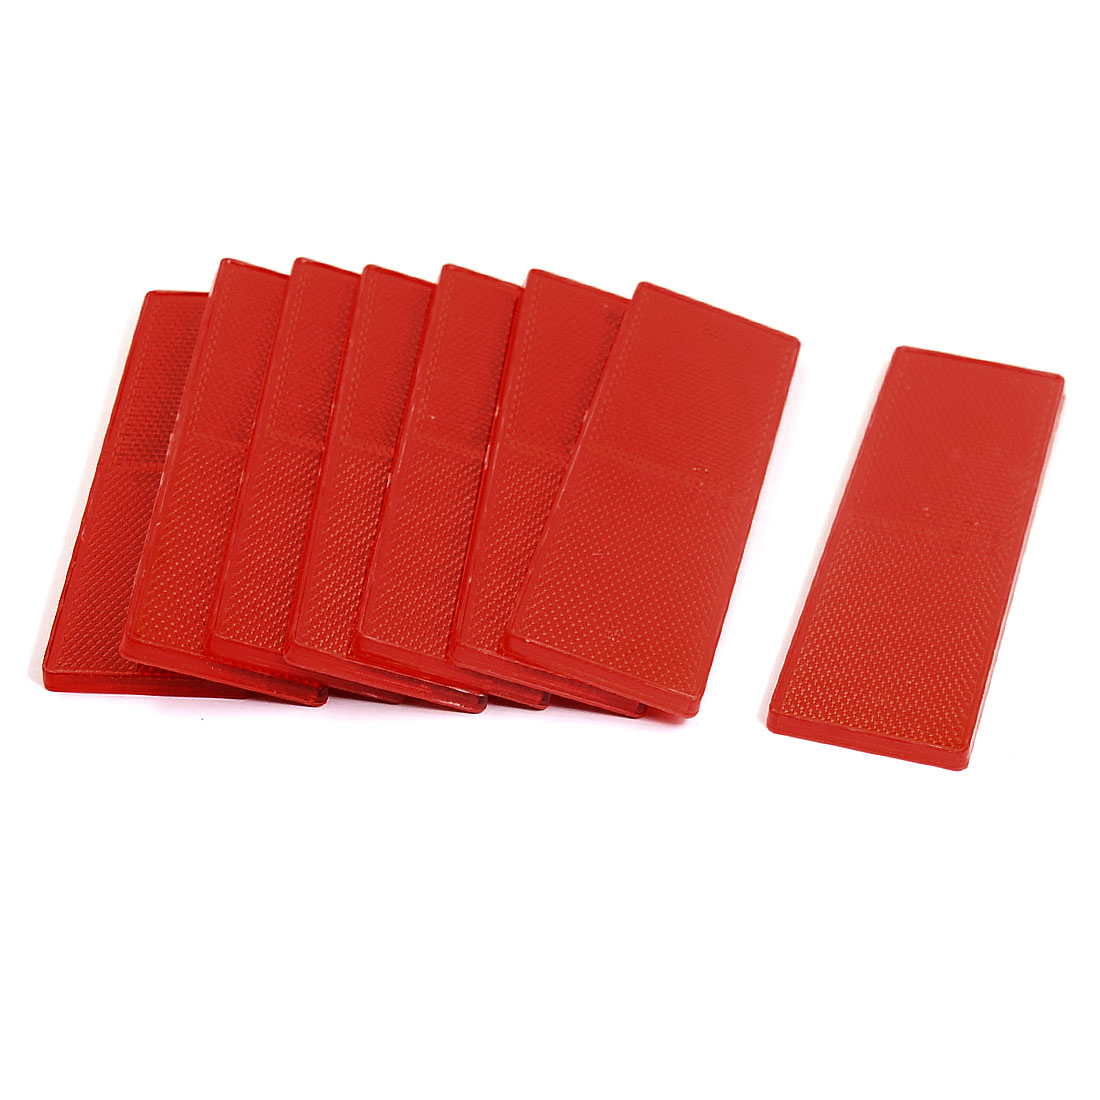 Motorcycle Truck Vehicle Rectangle Reflector Tail Brake Marker Red 8PCS